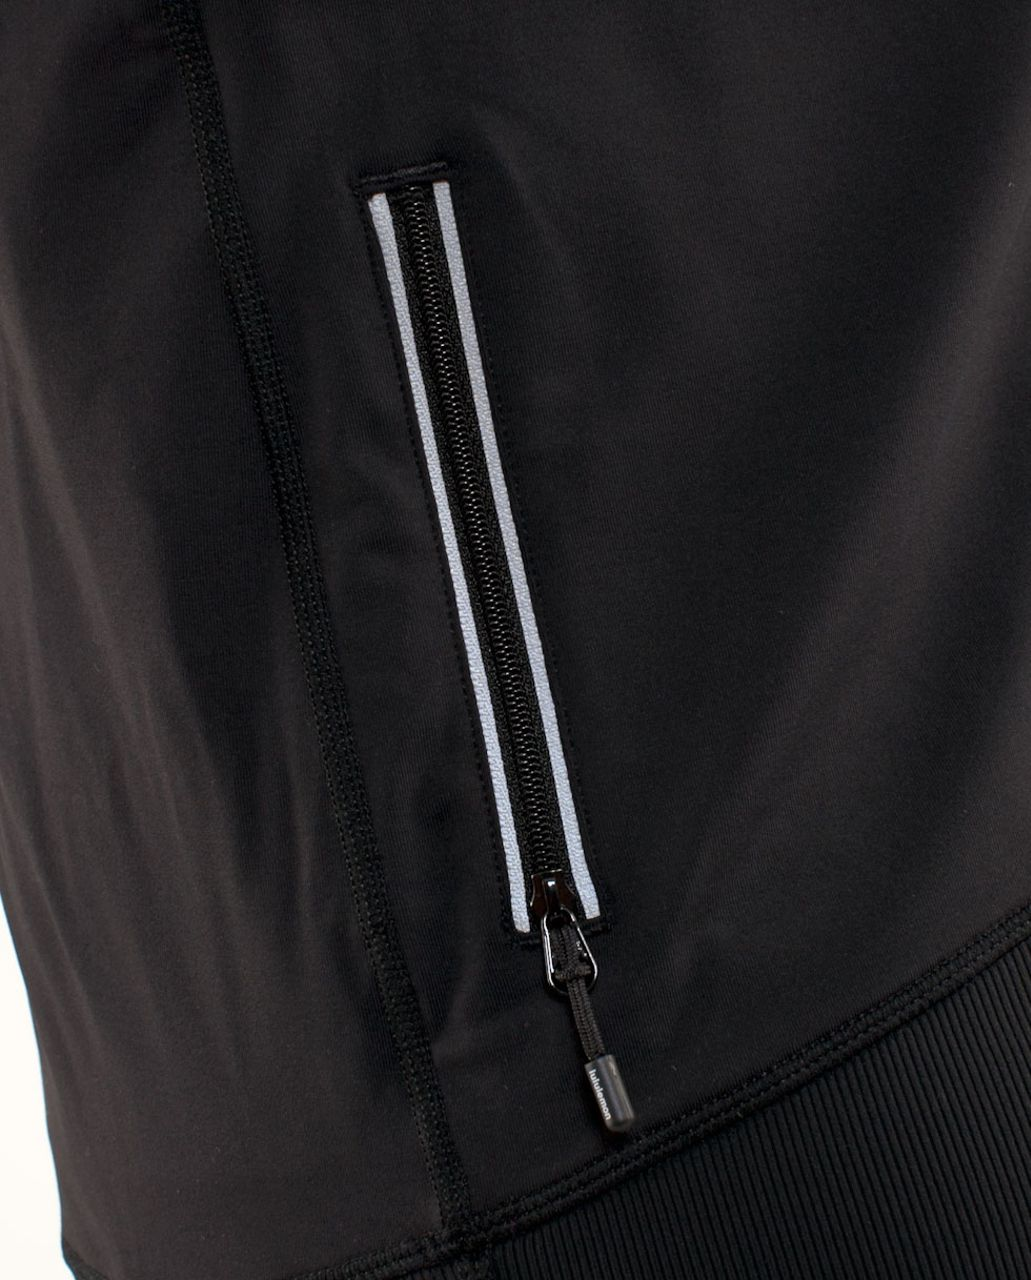 Lululemon Run:  Stay On Course Pullover - Black